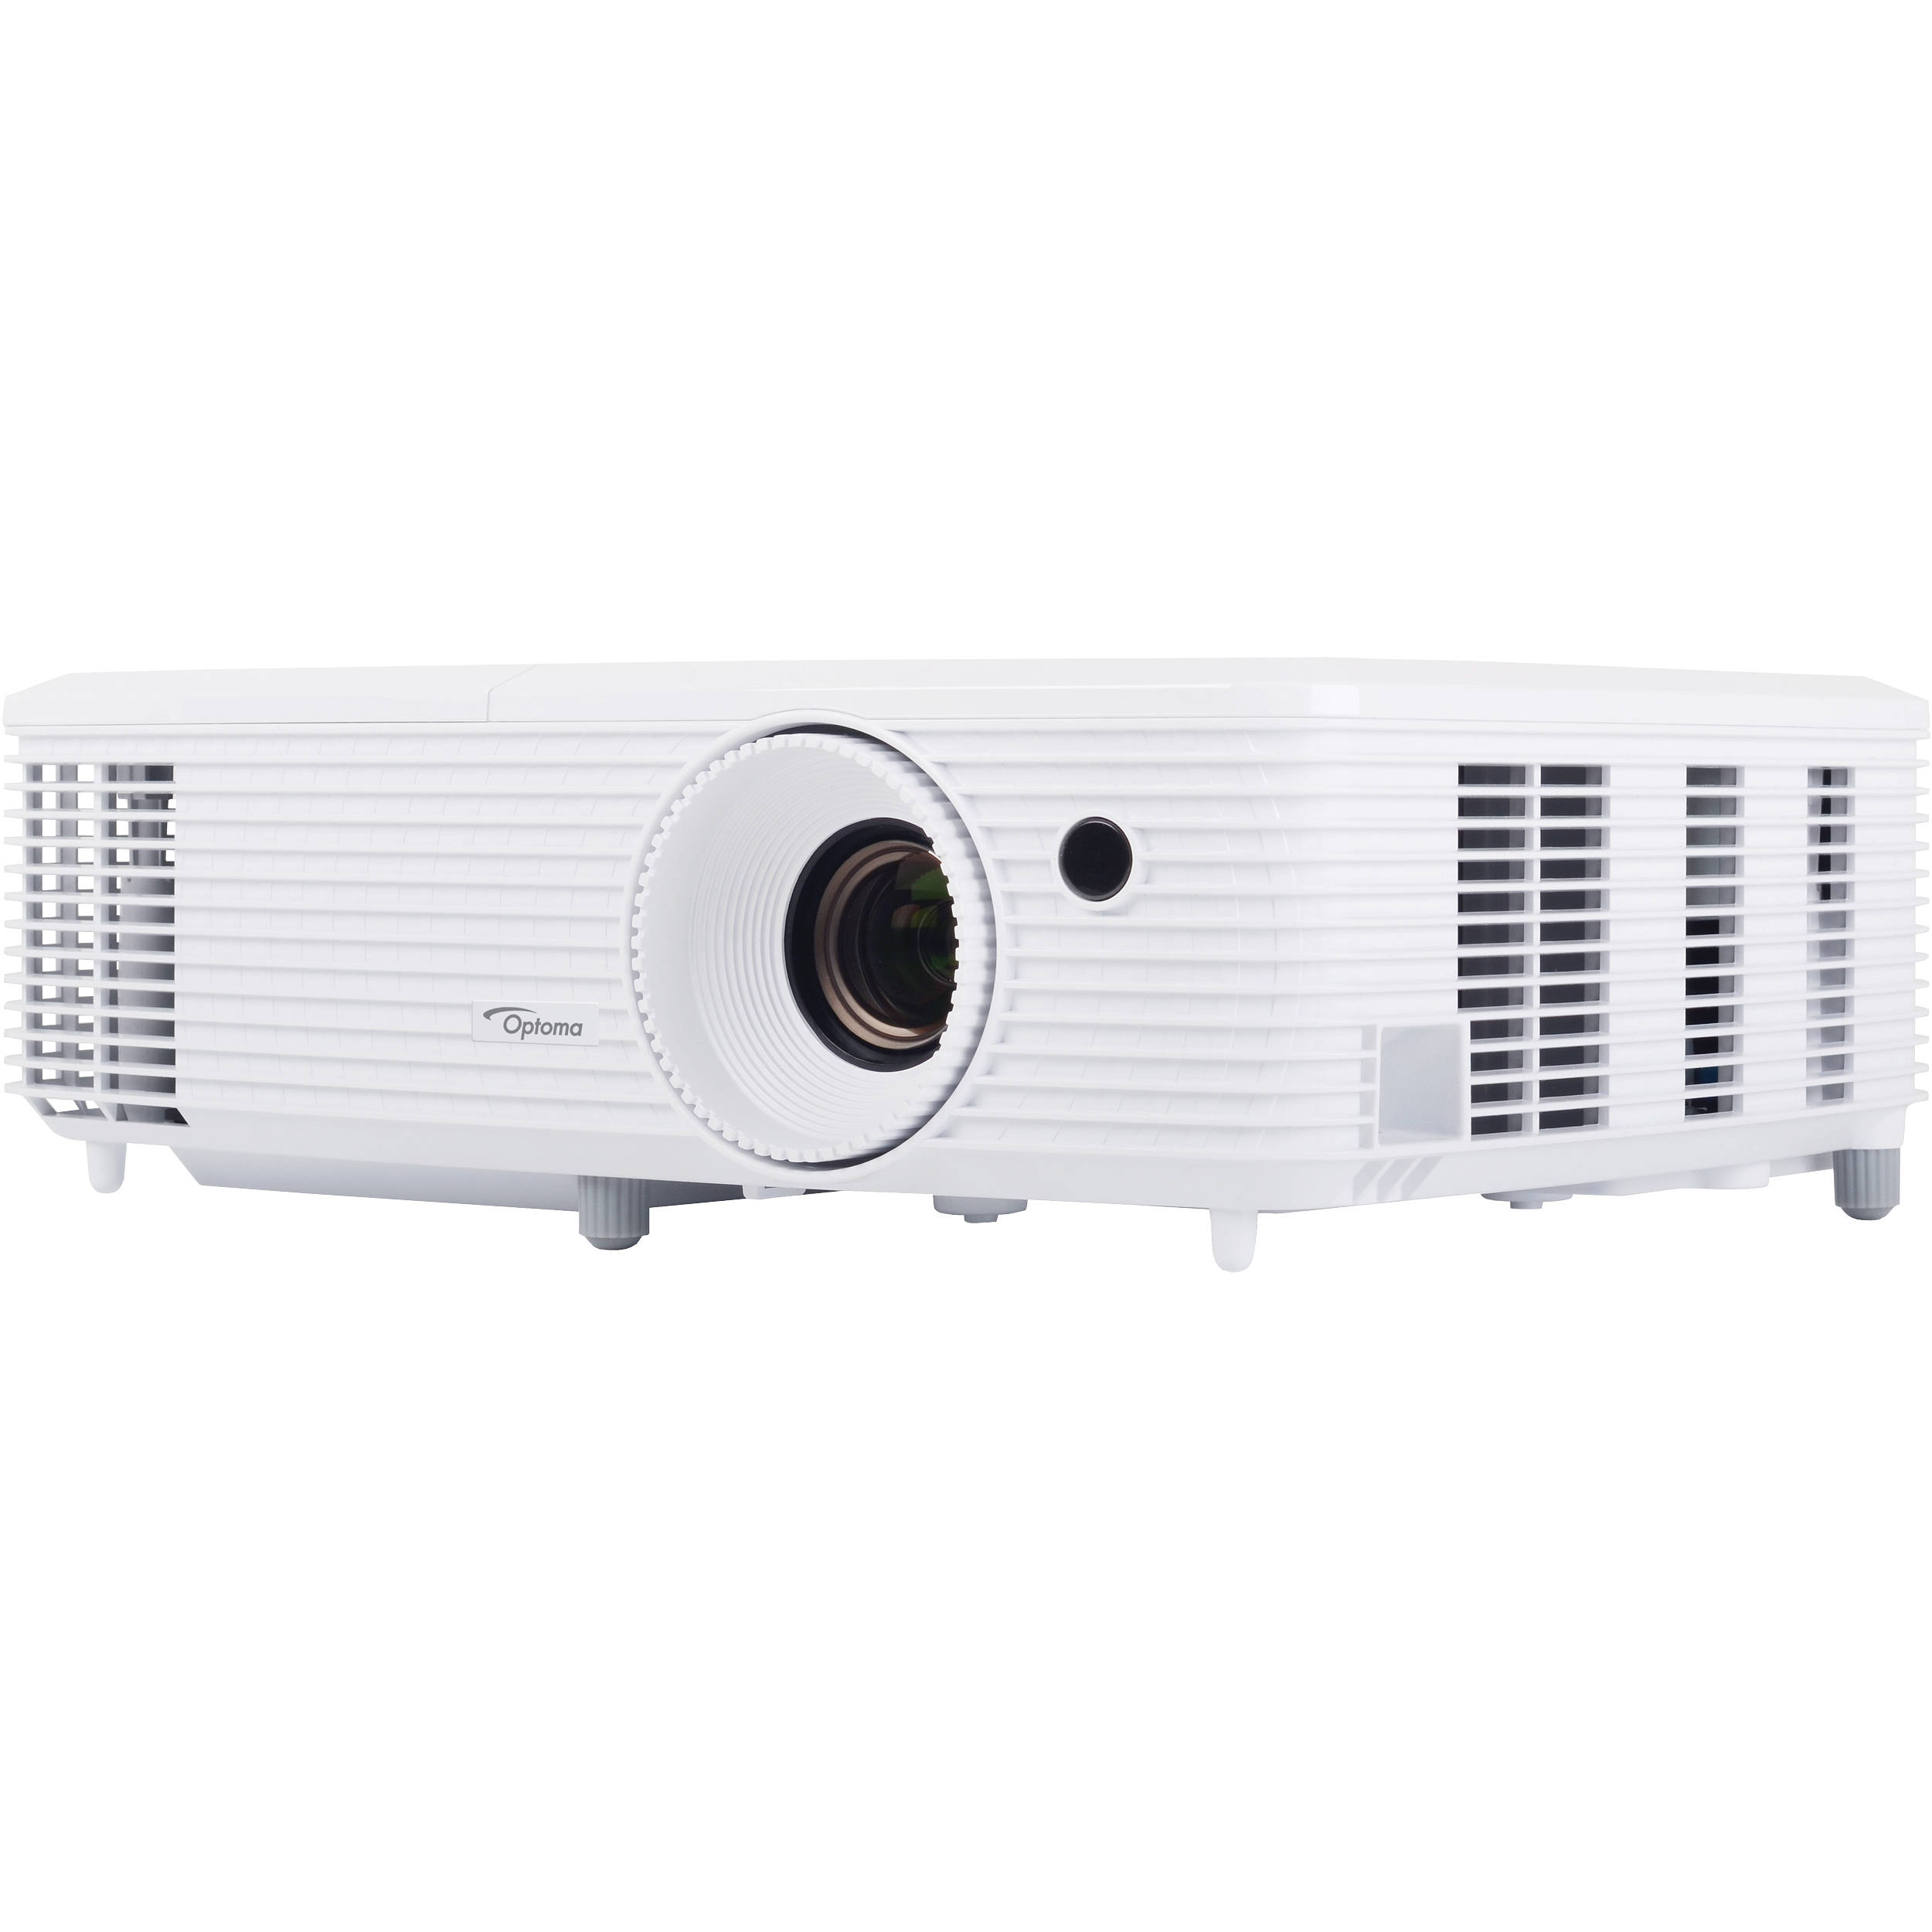 Hd Projector Of Optoma Technology Hd27 Full Hd Dlp Home Theater Projector Hd27